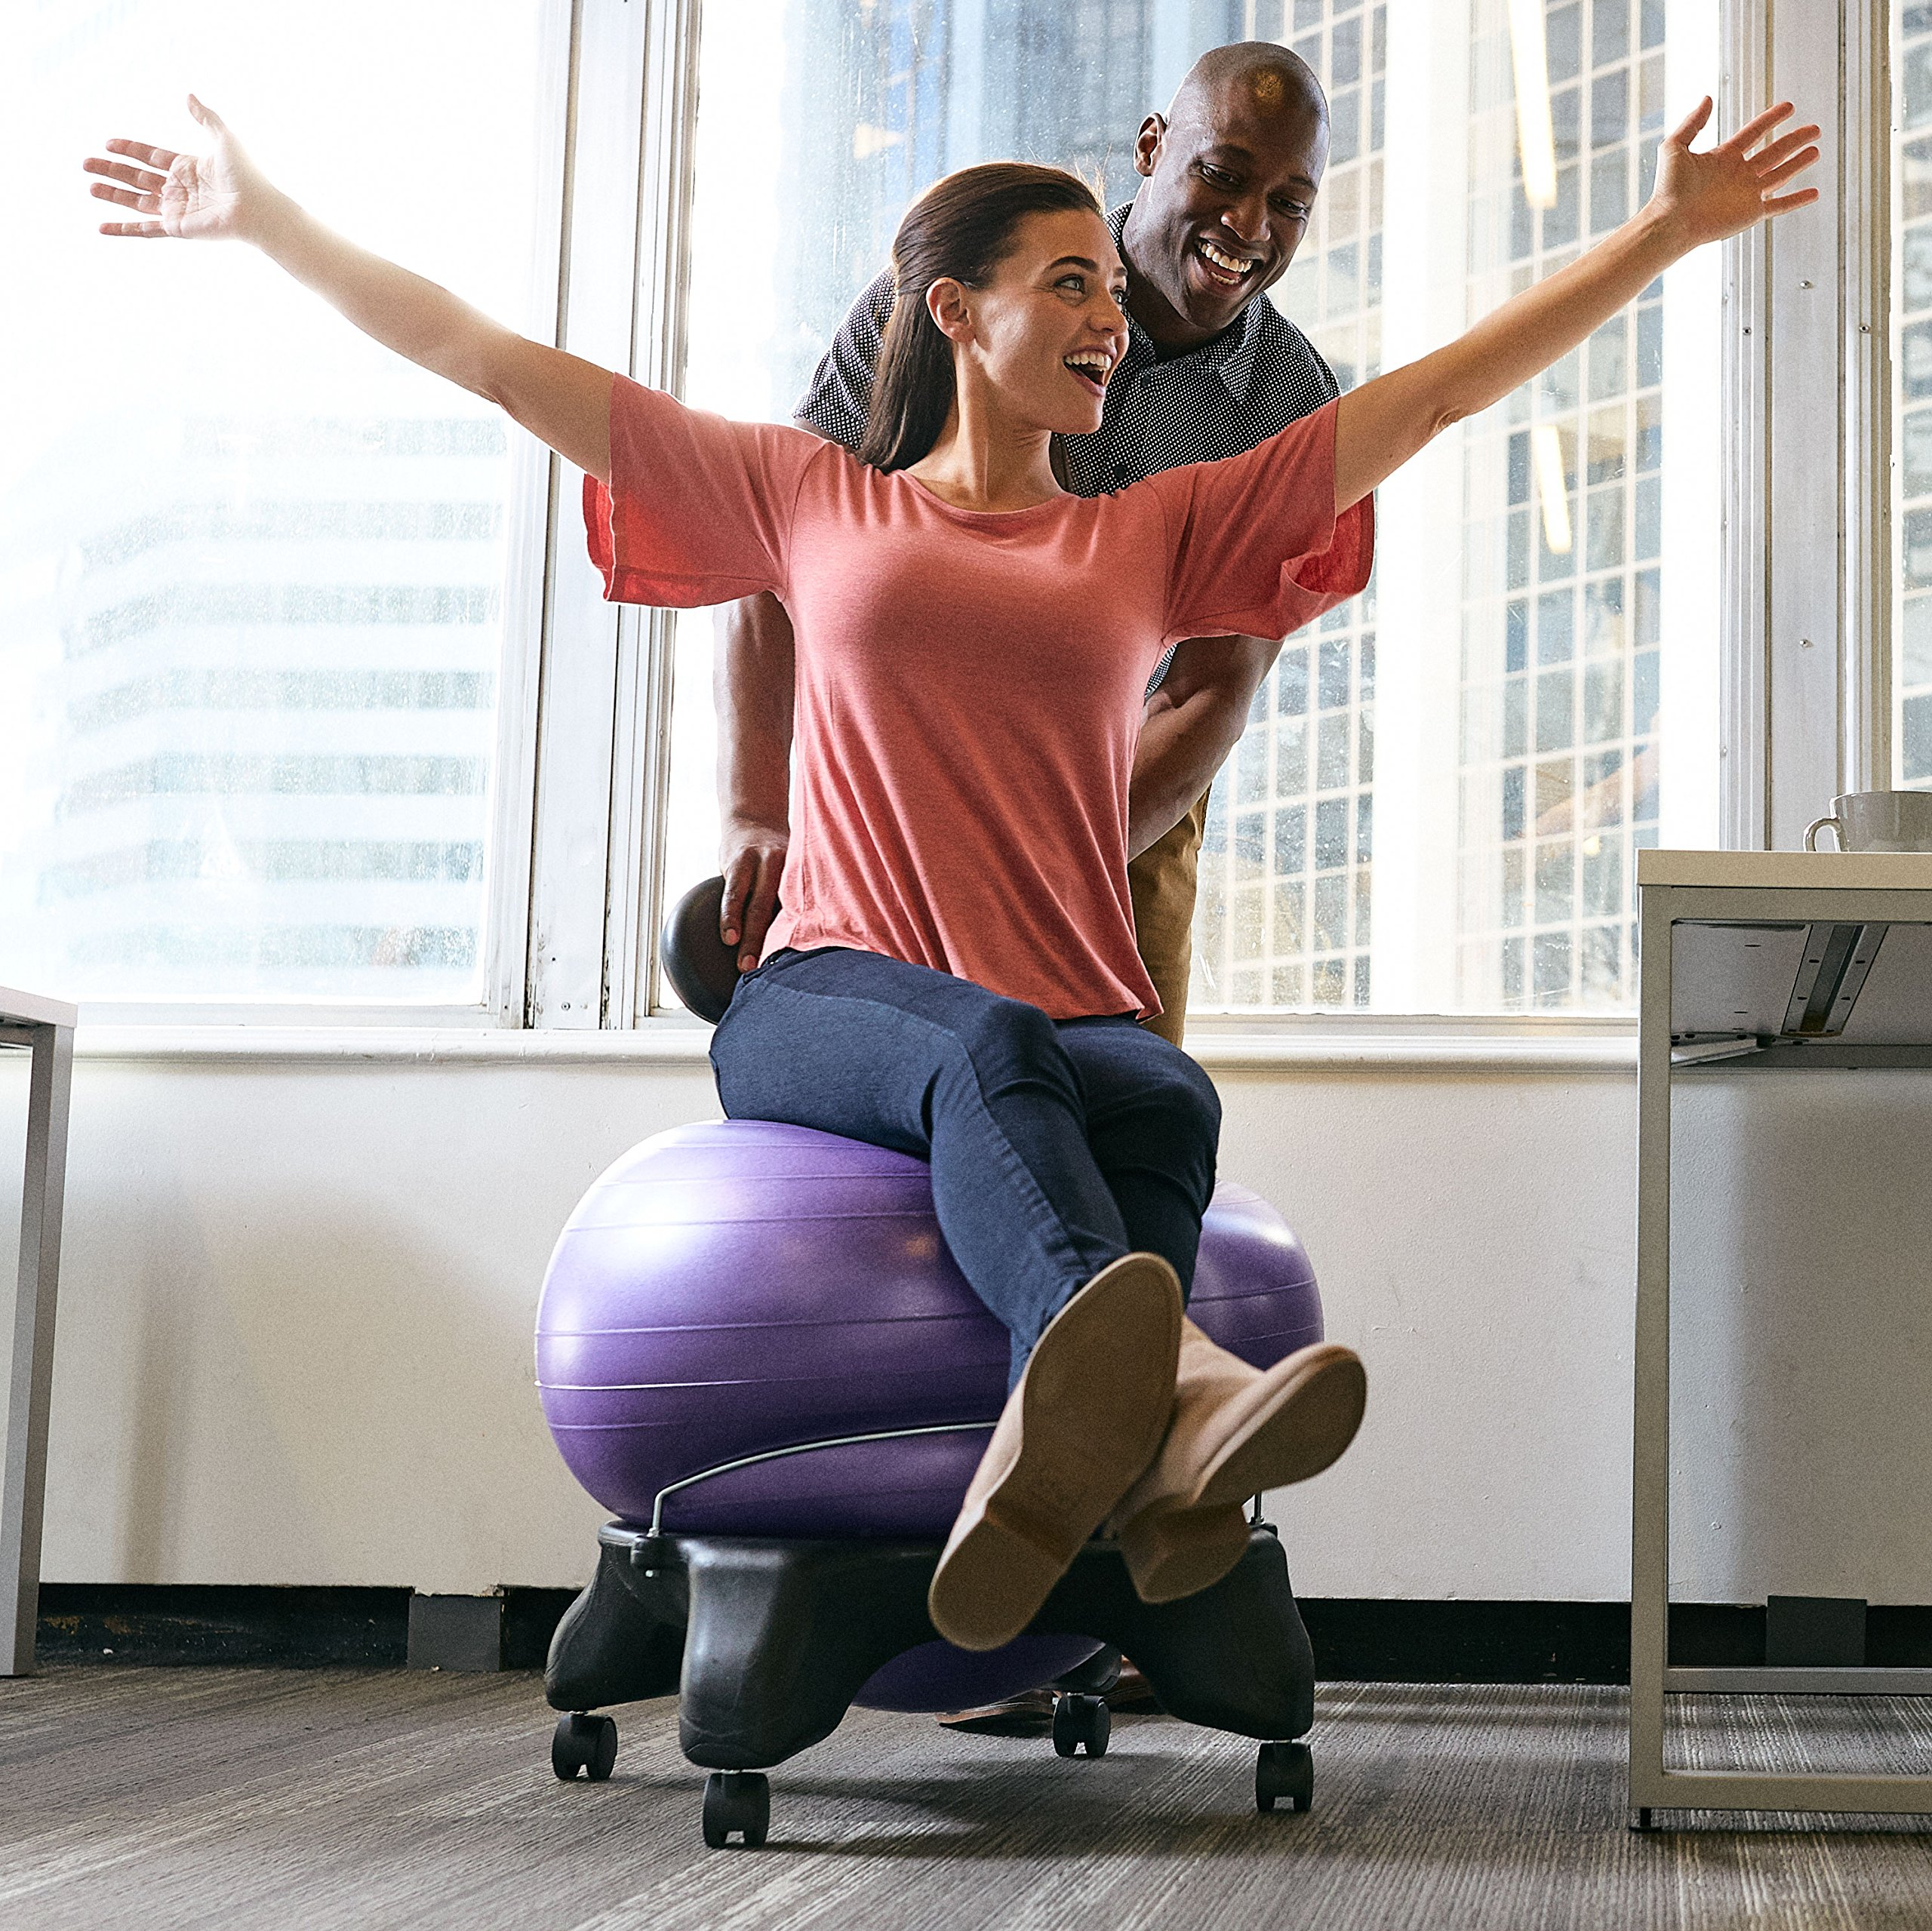 Gaiam Classic Balance Ball Chair – Exercise Stability Yoga Ball Premium Ergonomic Chair for Home and Office Desk with Air Pump, Exercise Guide and Satisfaction Guarantee, Green by Gaiam (Image #7)